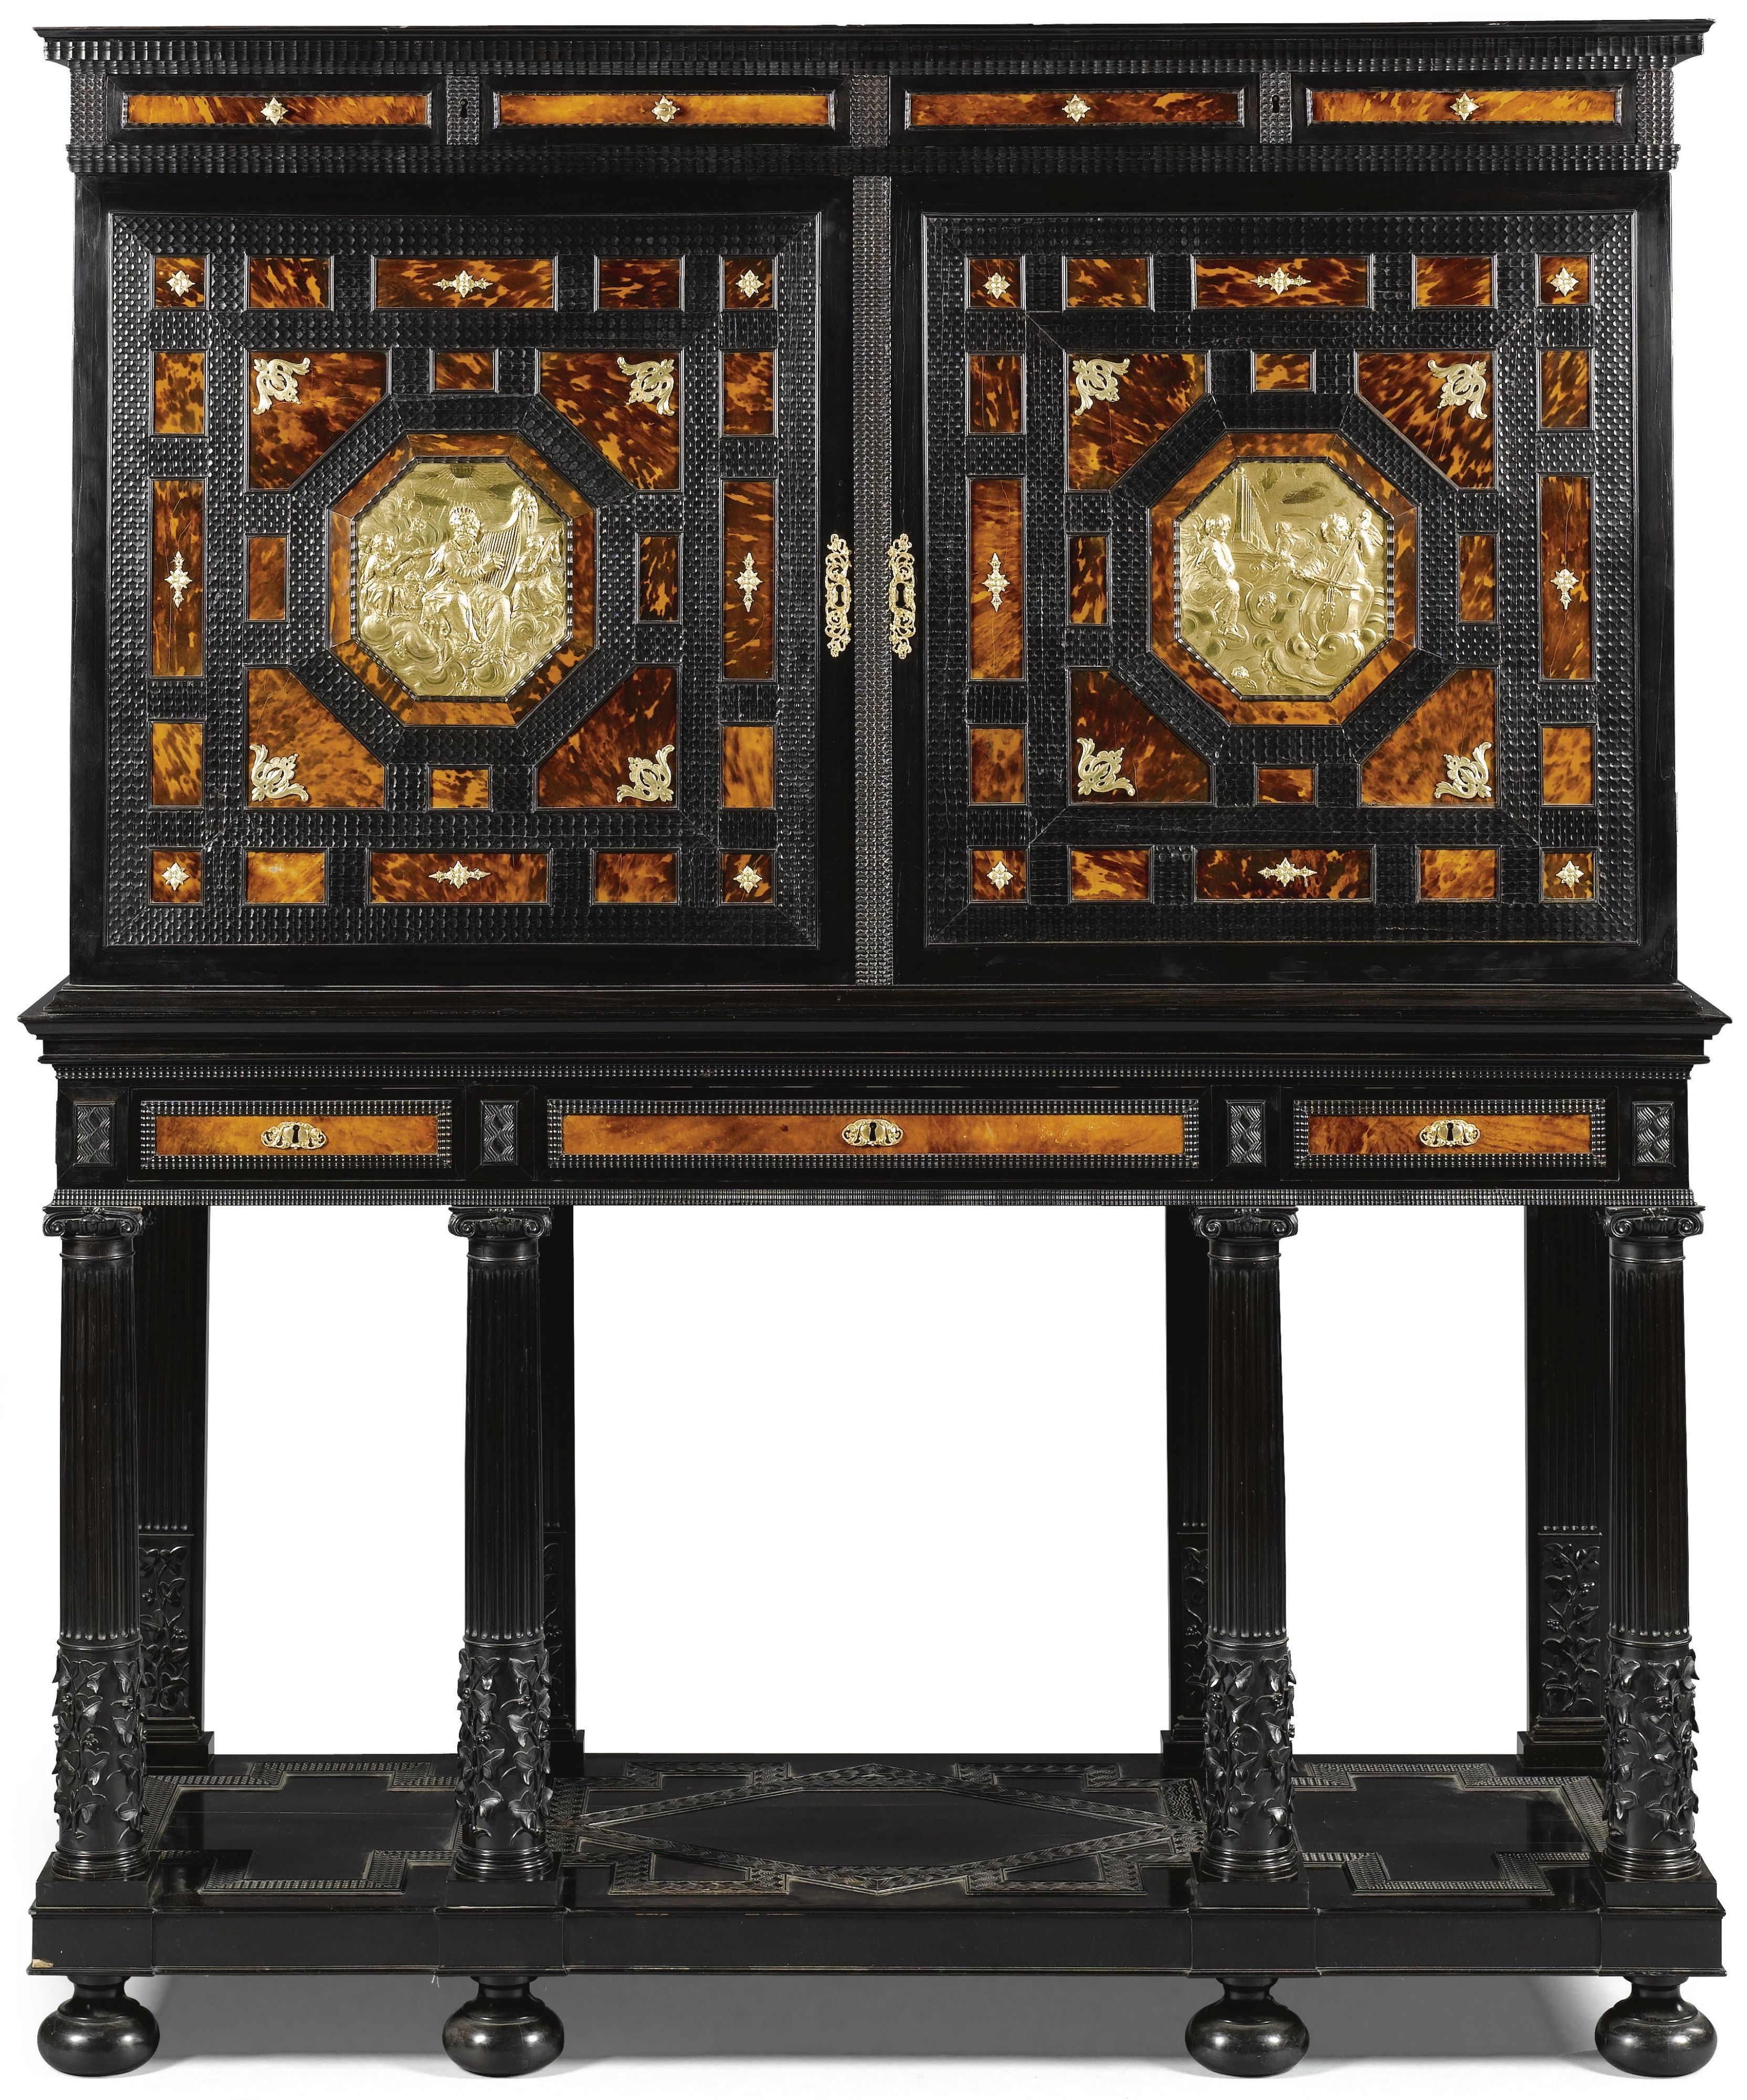 A Flemish Gilt Bronze Mounted Tortoiseshell And Ivory Inlaid Parquetry Ebony And Ebonised Cabinet On Stand Antwer Parquetry Cabinet Cupboard Baroque Furniture